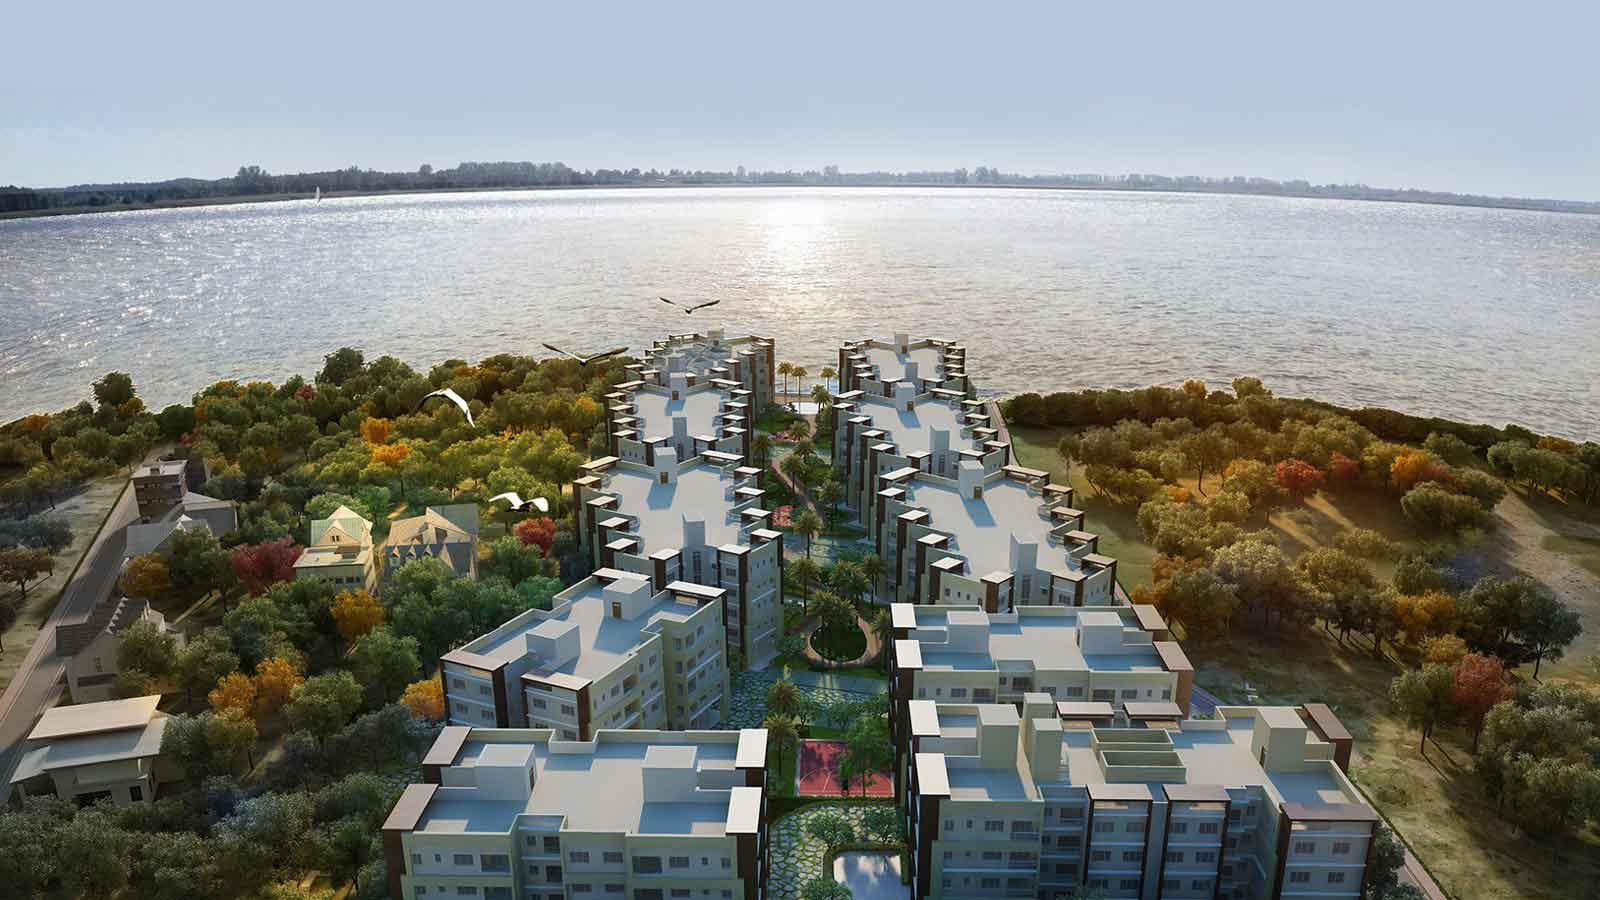 Rameswara Riverview Luxury Apartments by Ganges